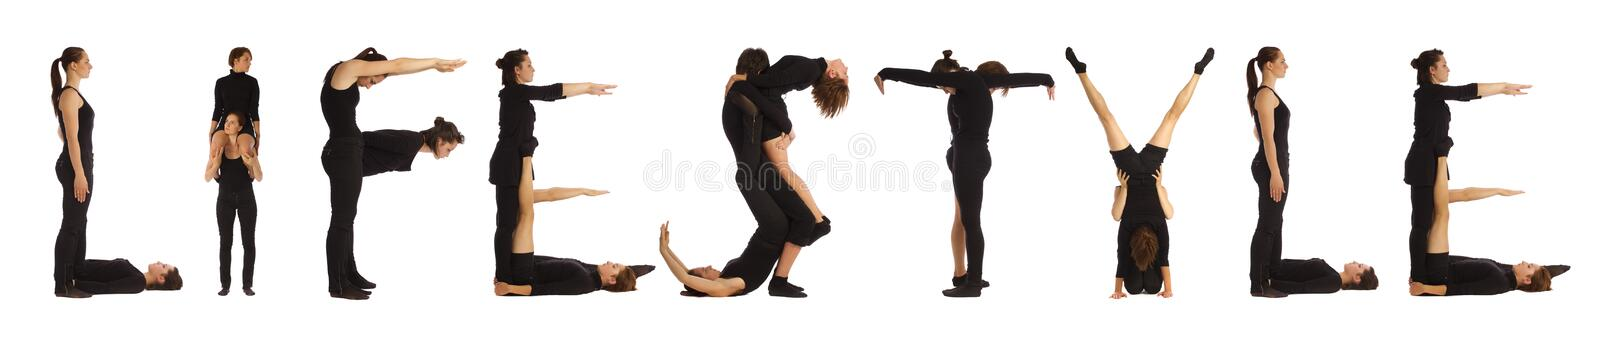 Black dressed people forming LIFESTYLE word royalty free stock photography